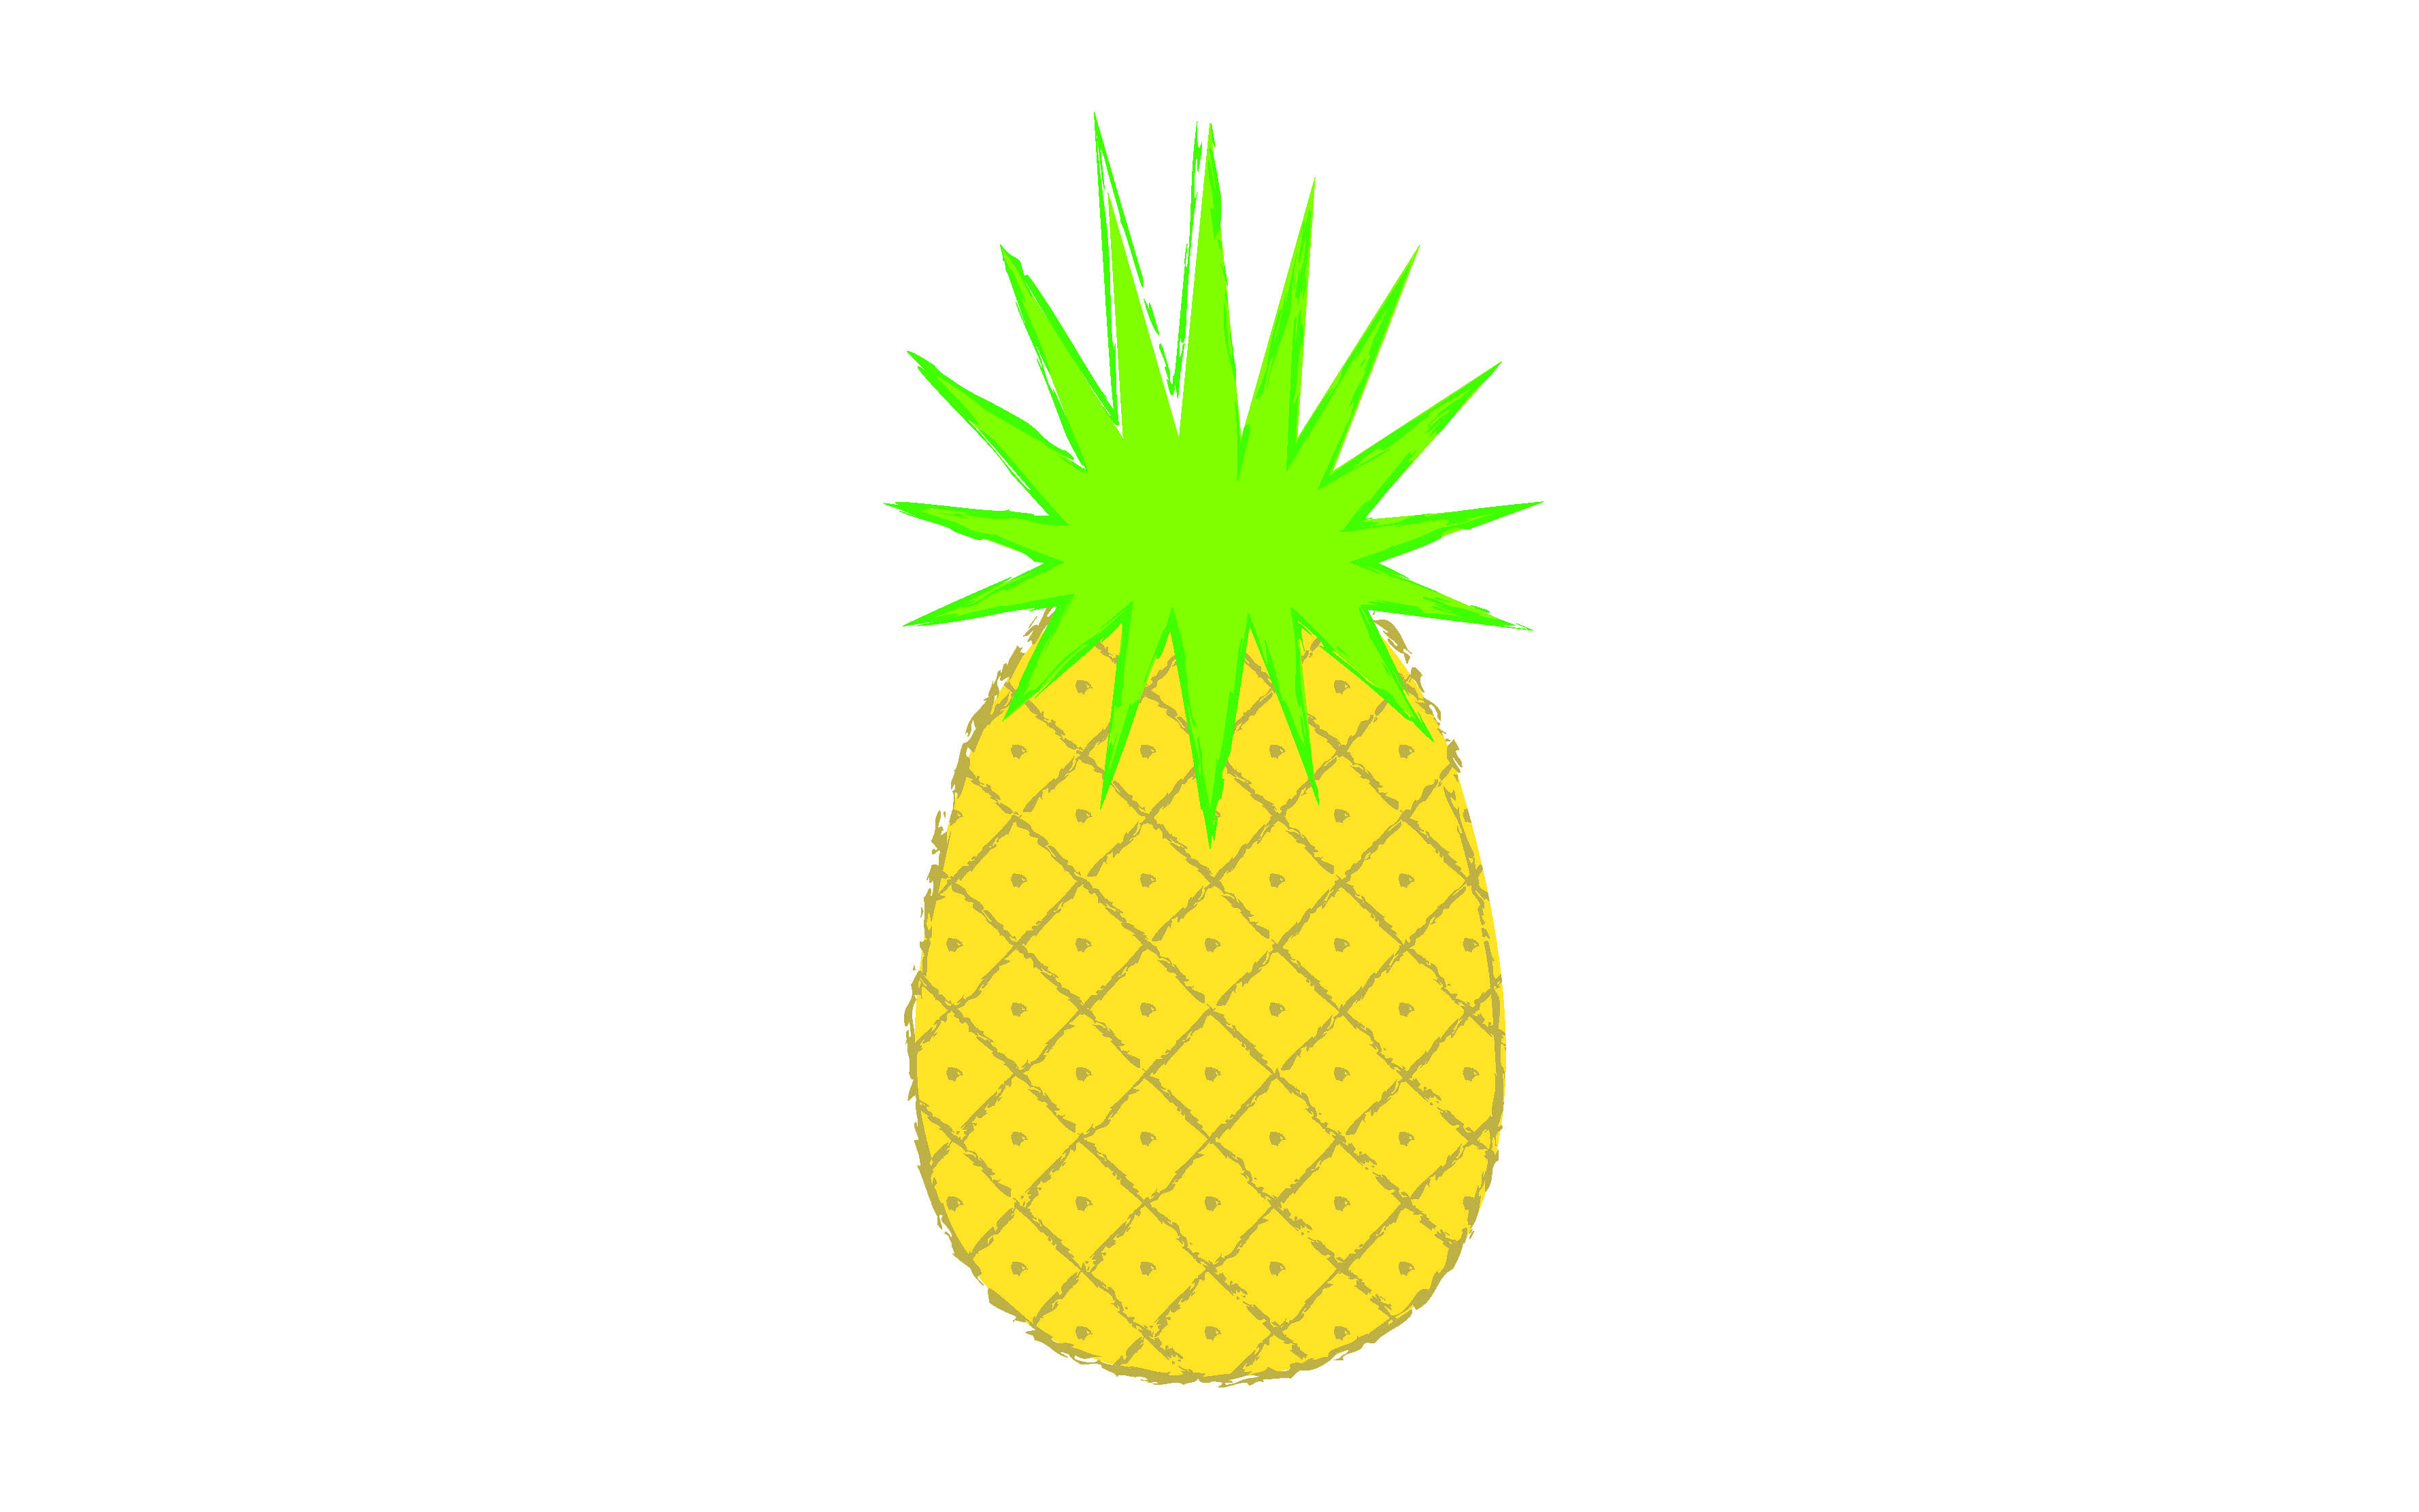 pineapple-wallpaper-iphone-pineapple-desktop-wallpaper 1 jpgPineapple Wallpaper Iphone